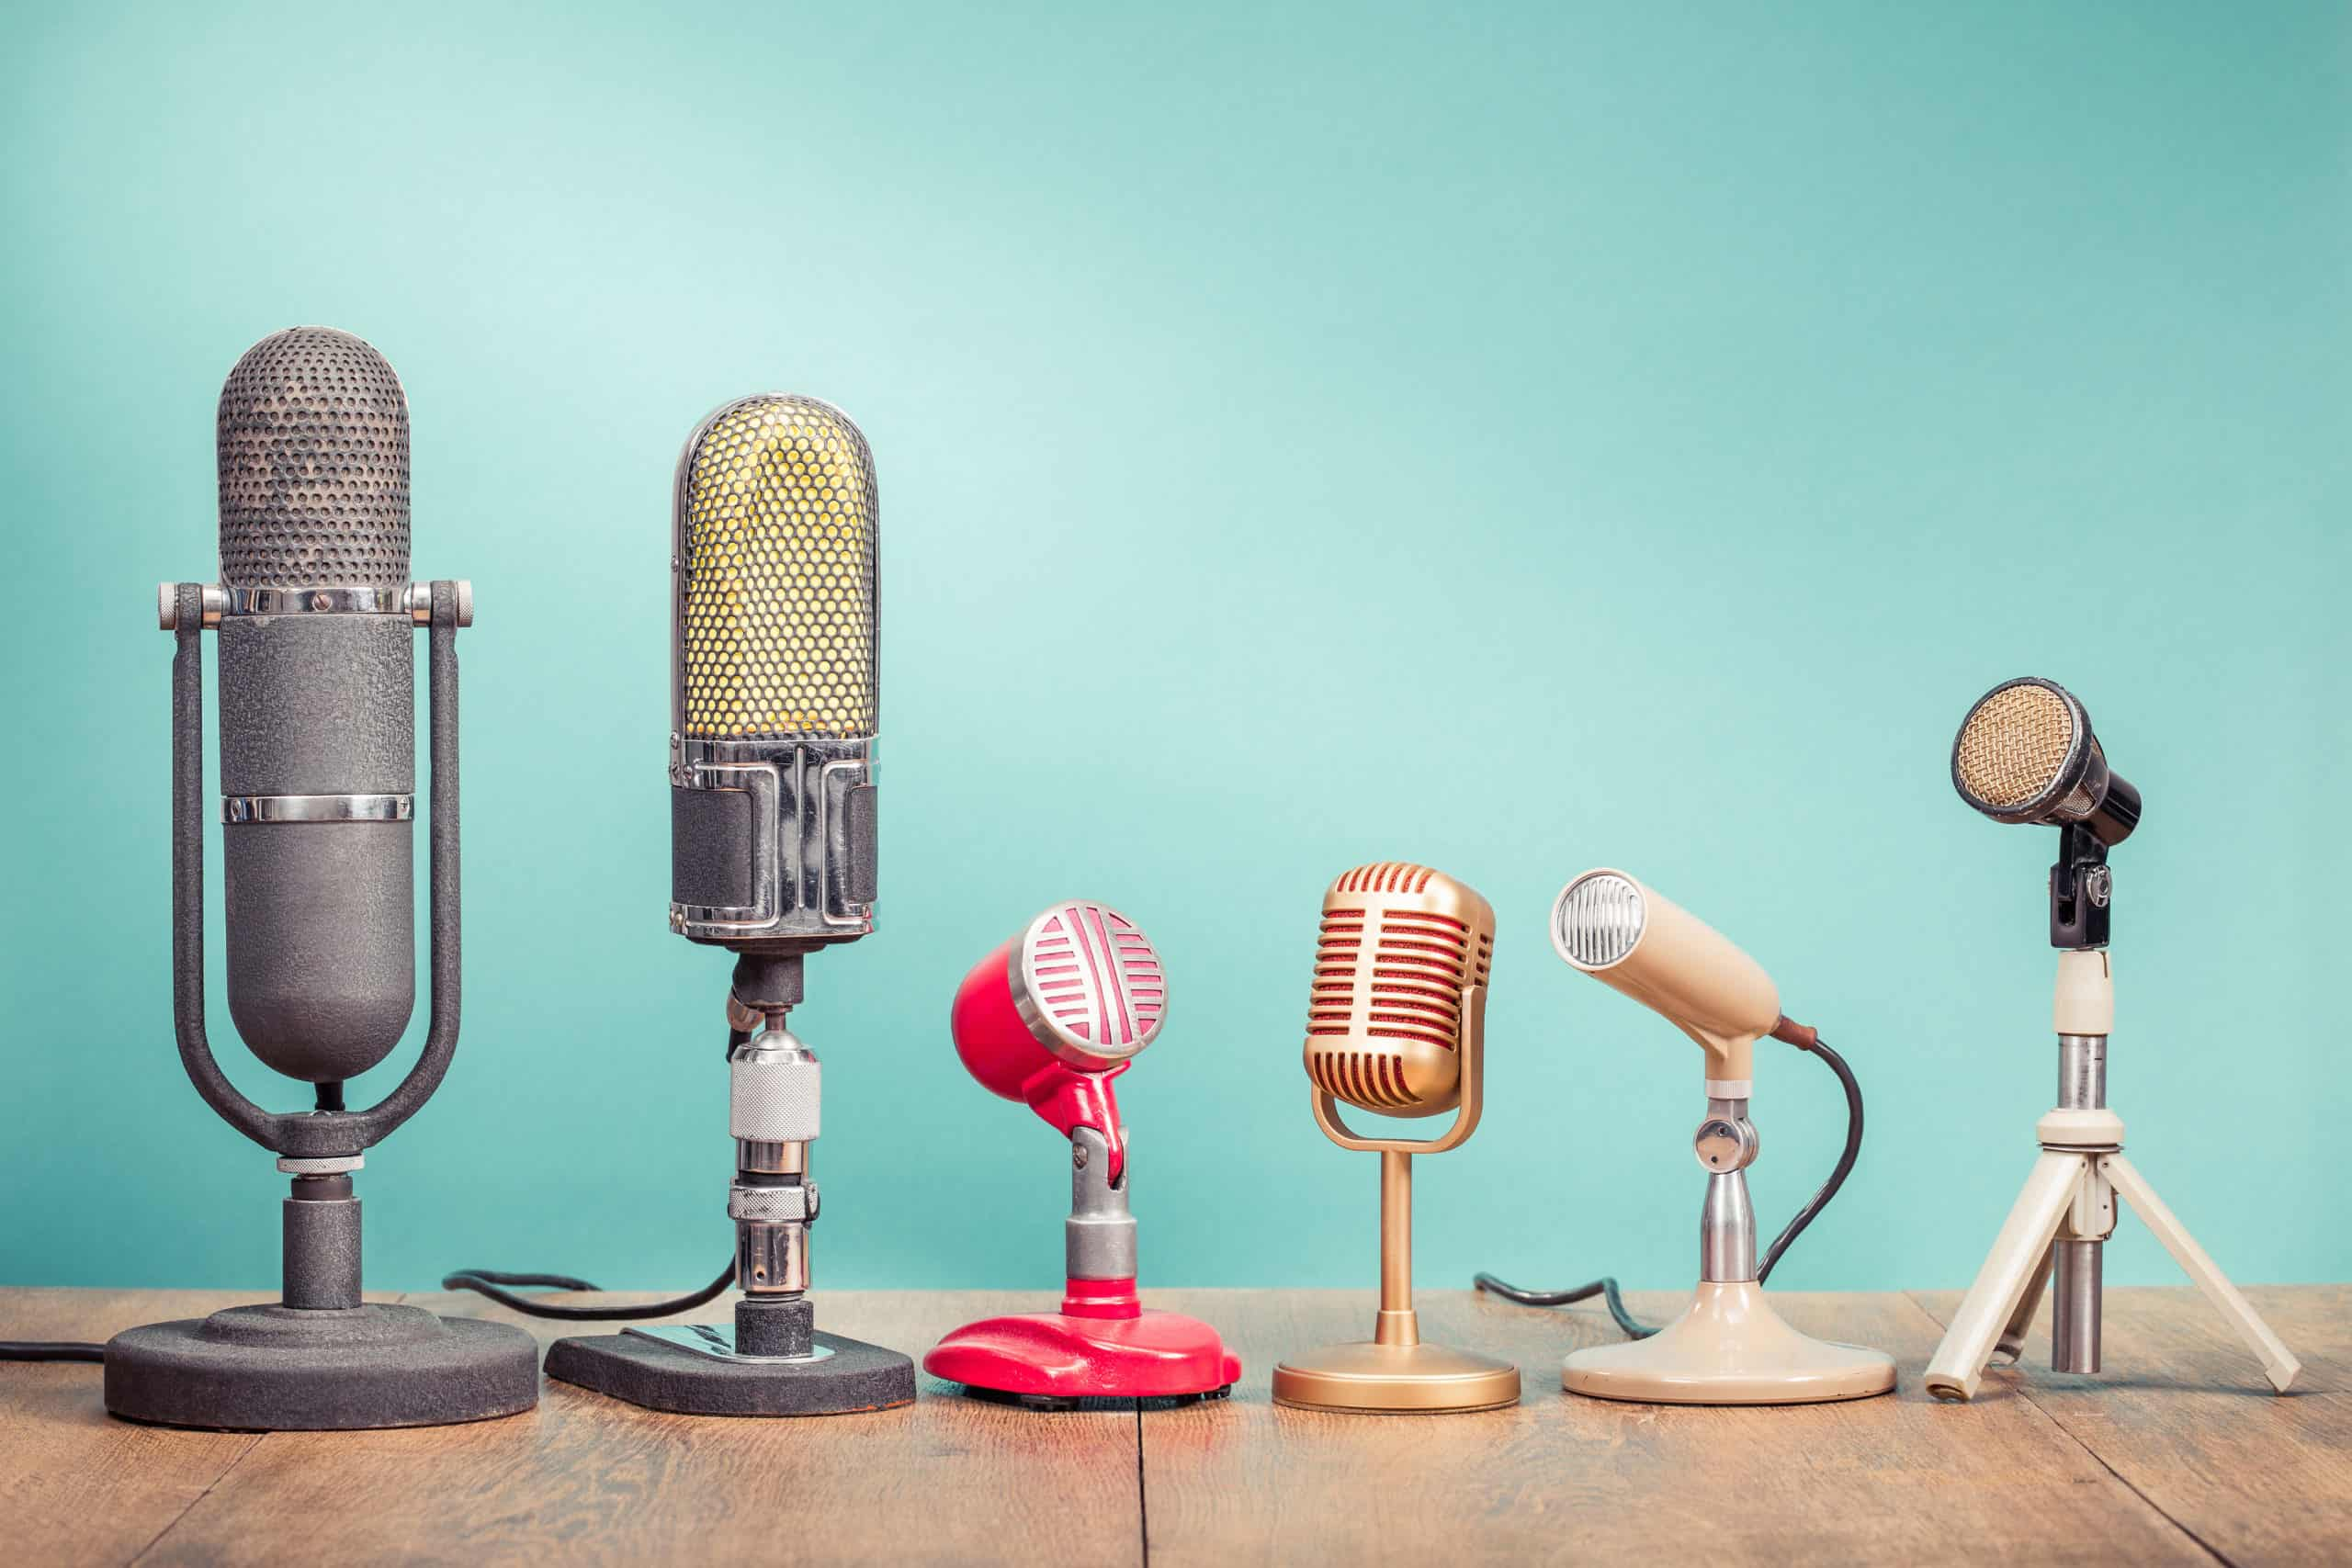 A row of microphones on a blue background